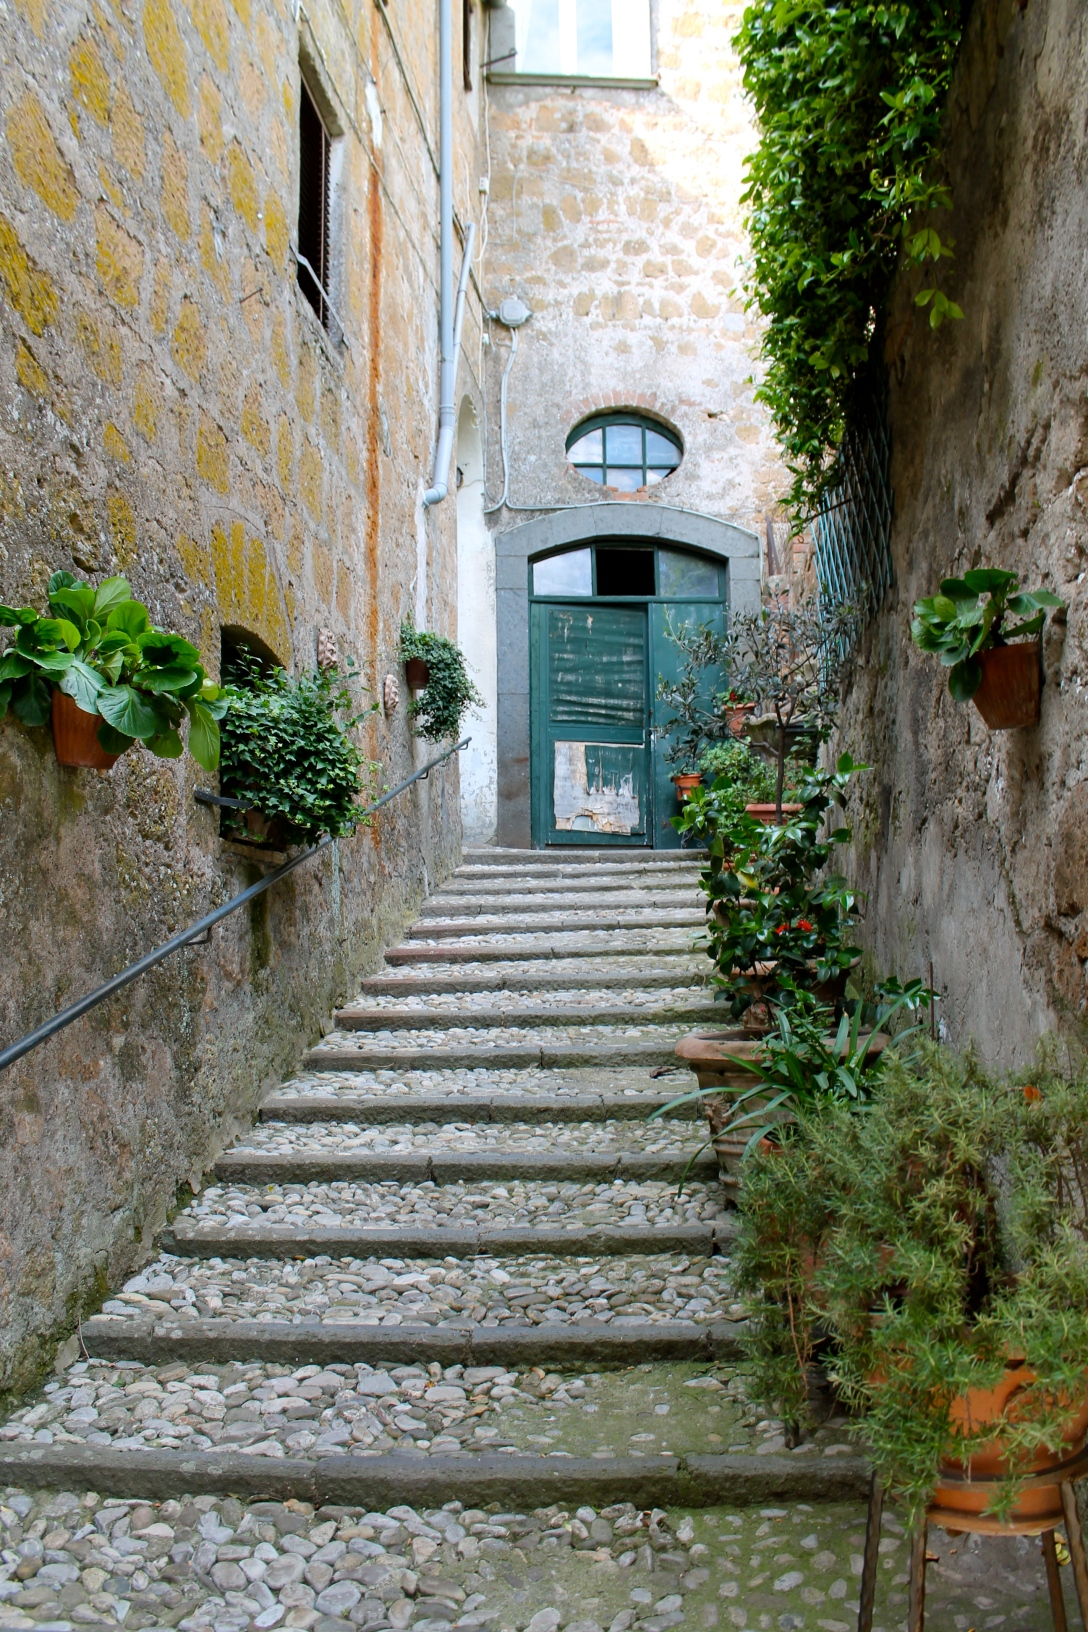 I found this beautiful staircase when I went roaming through the tiny town of Orvieto in Italy